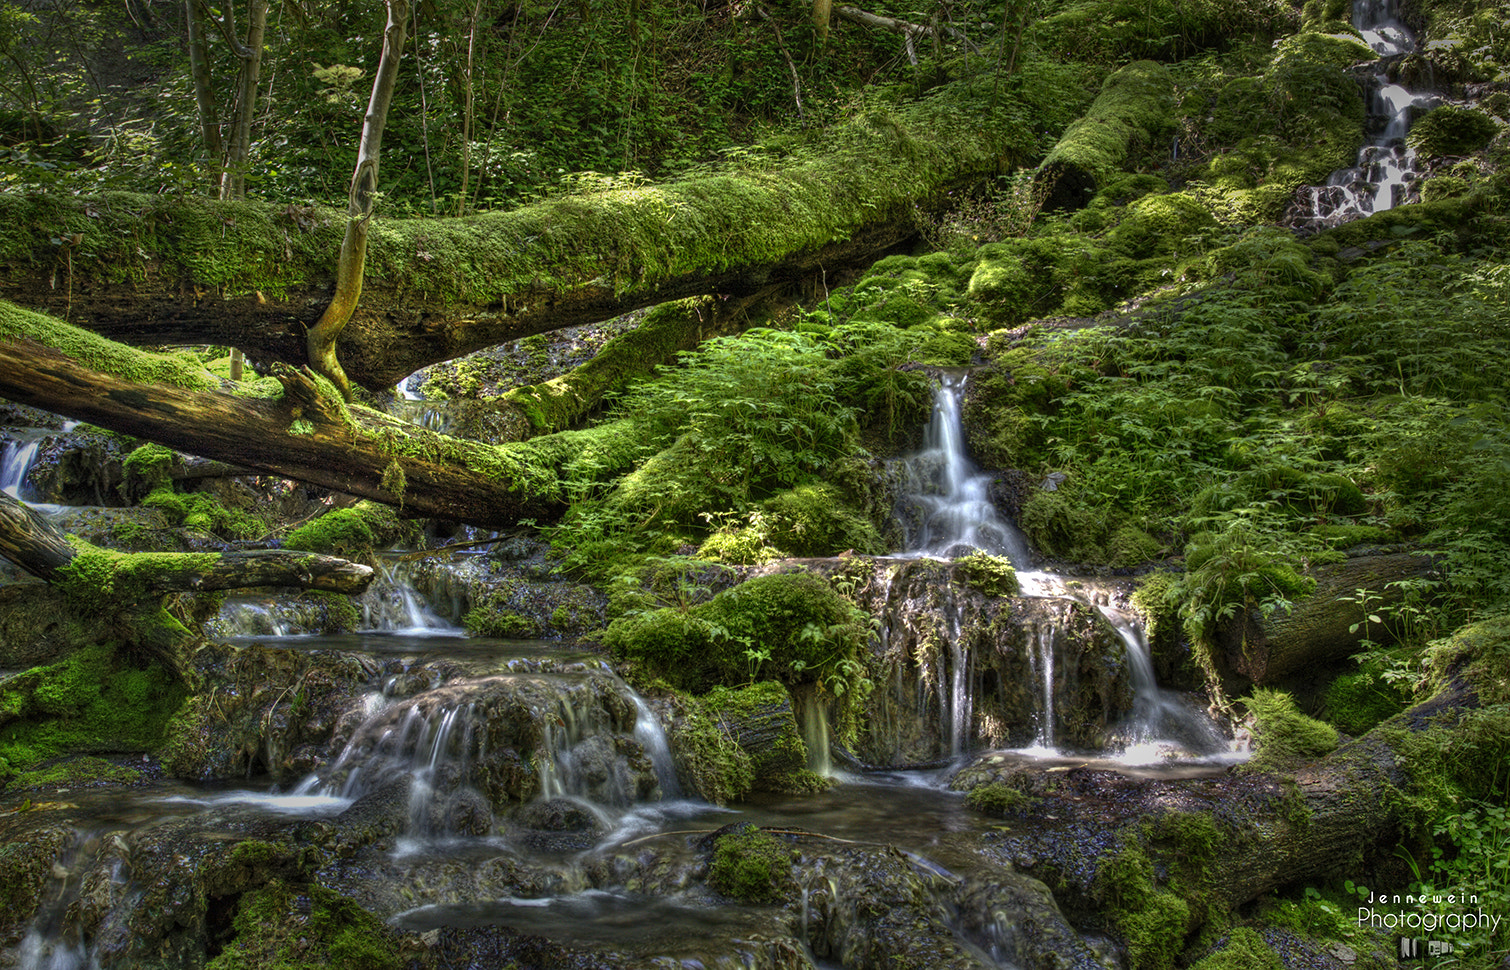 Photograph little waterfall by Jennewein Photography on 500px